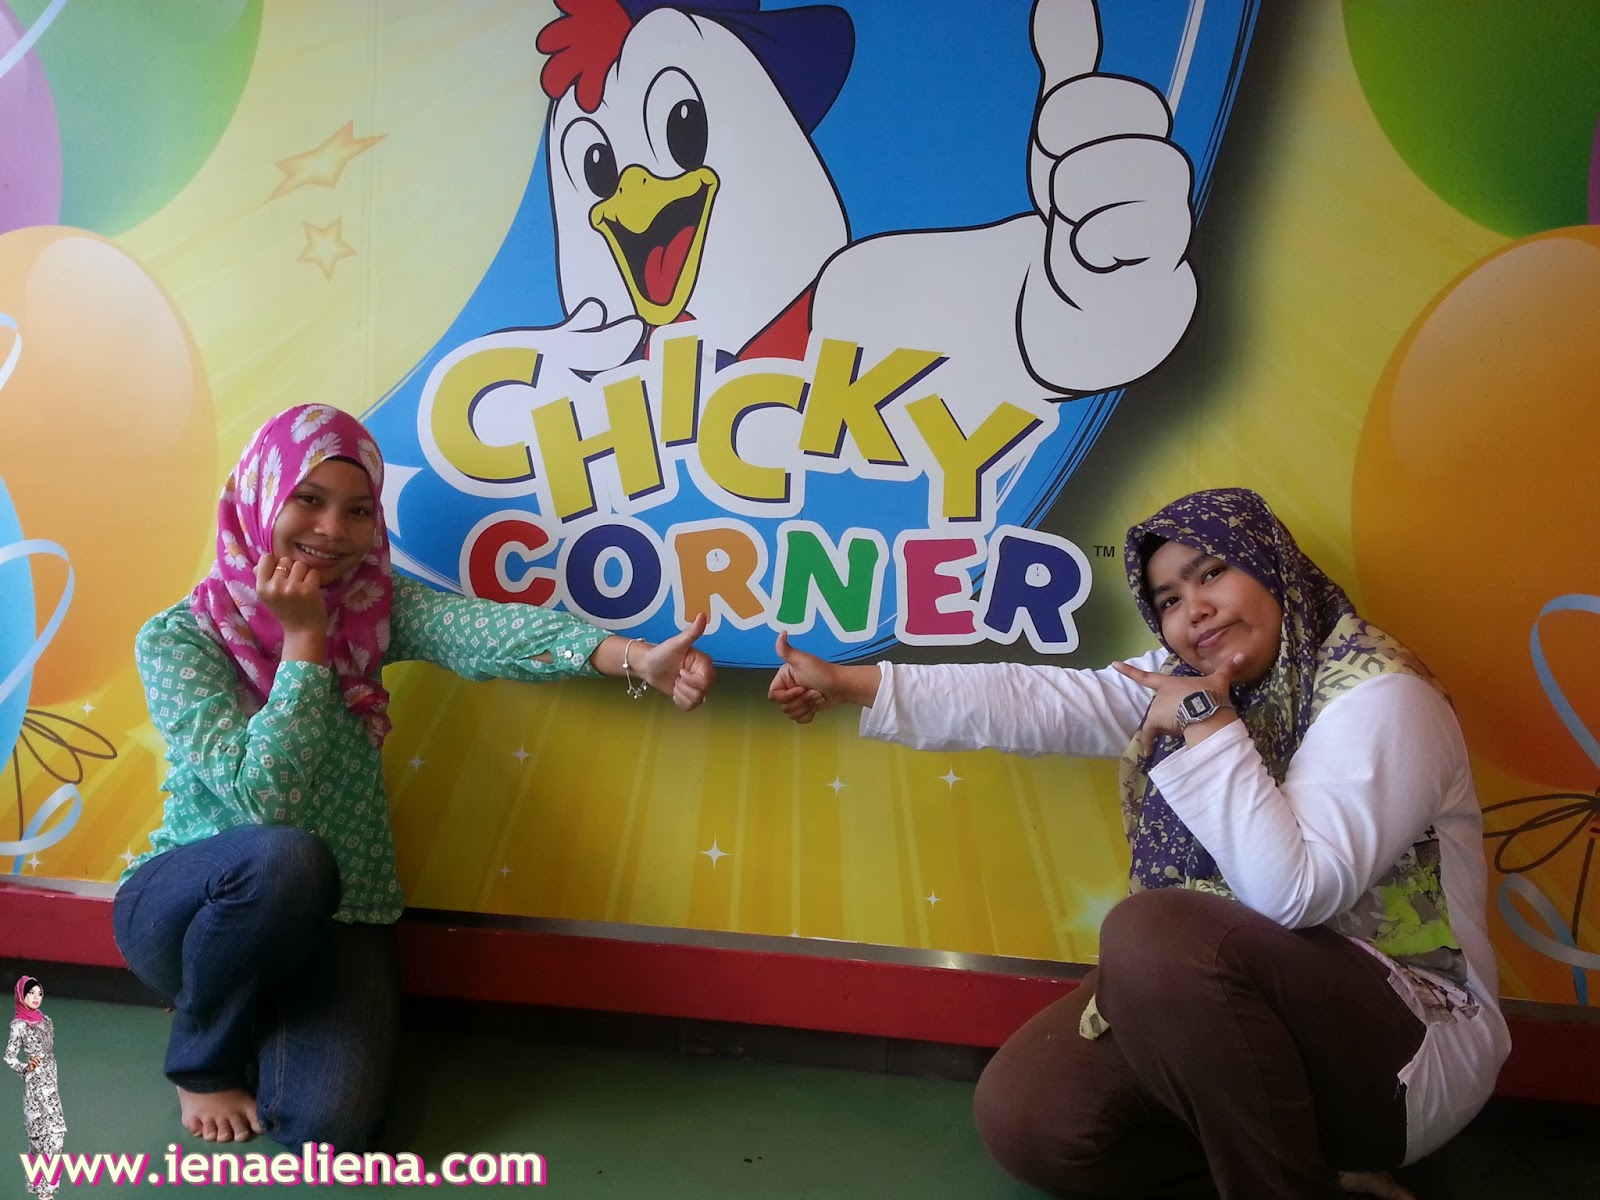 Birthday Celebration With Family - chicky corner